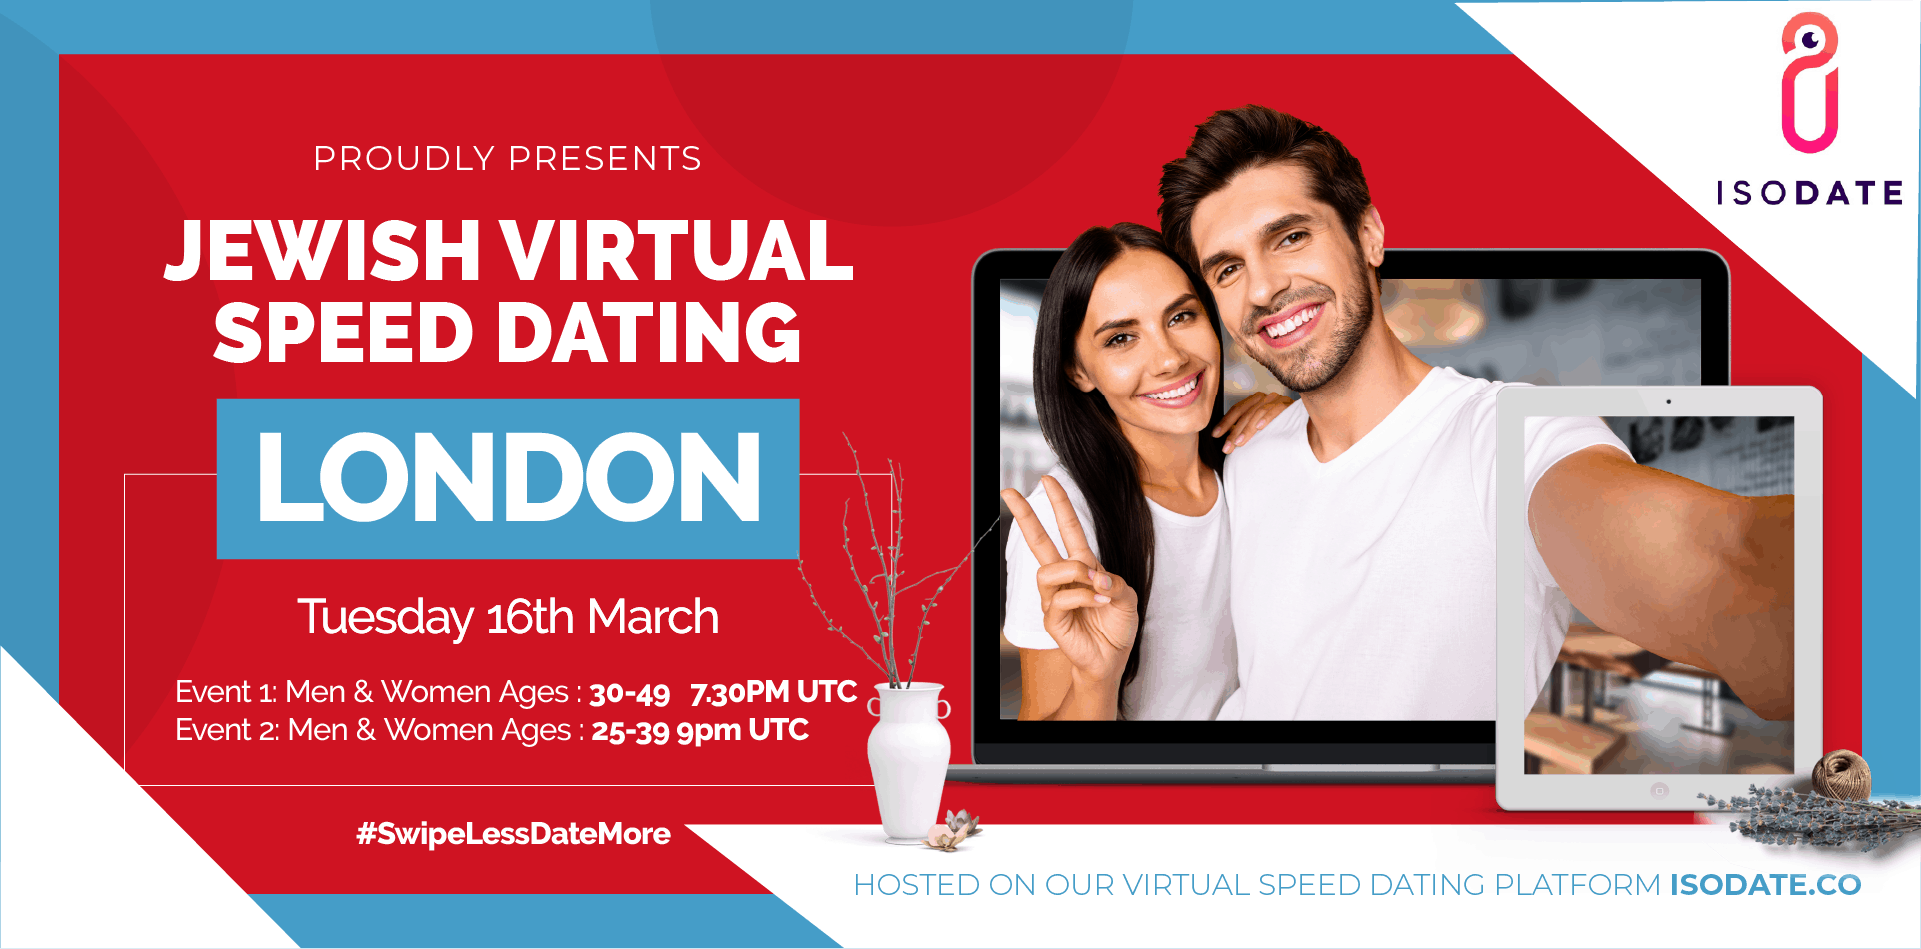 Isodate's London Jewish Virtual Speed Dating - Swipe Less, Date More